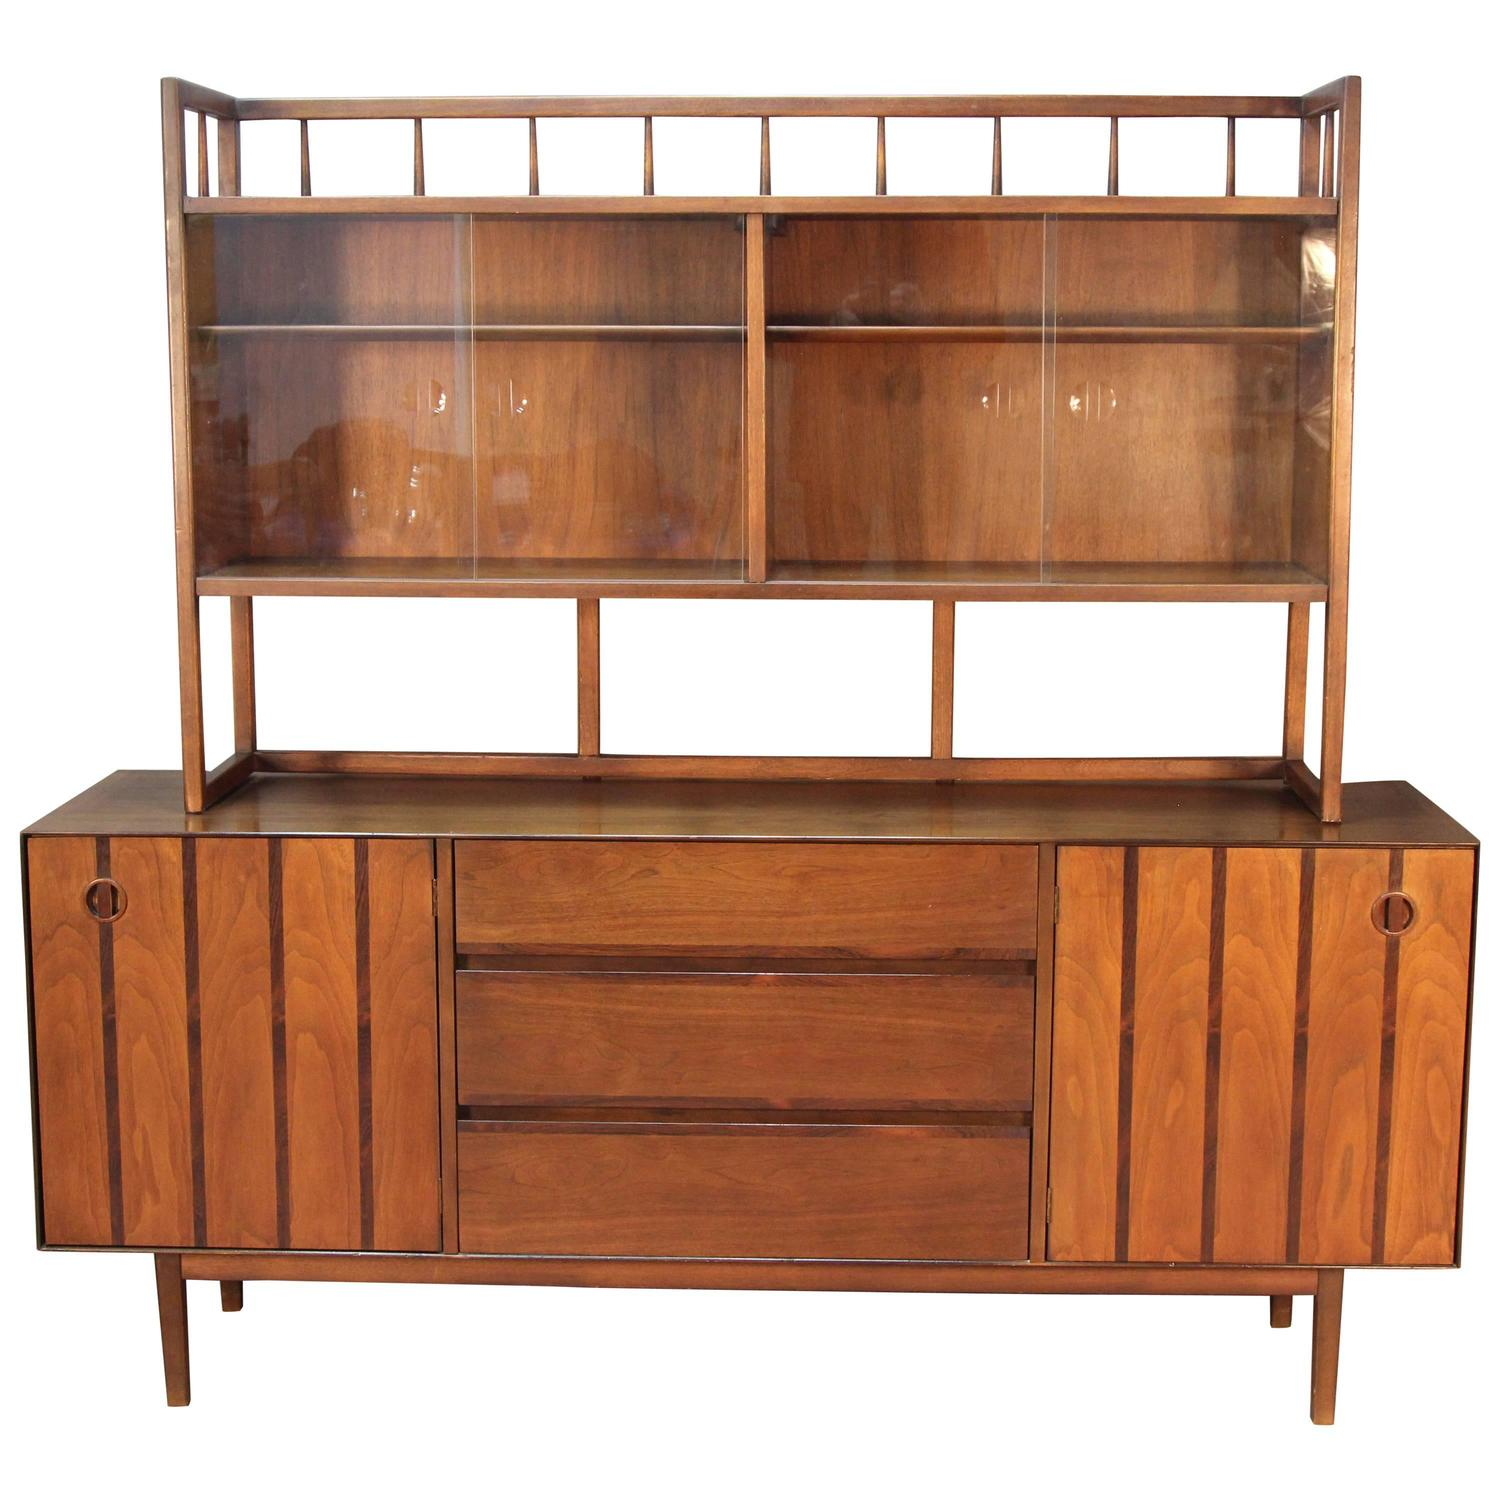 Mid-Century Modern Credenza and Bookcase For Sale at 1stdibs